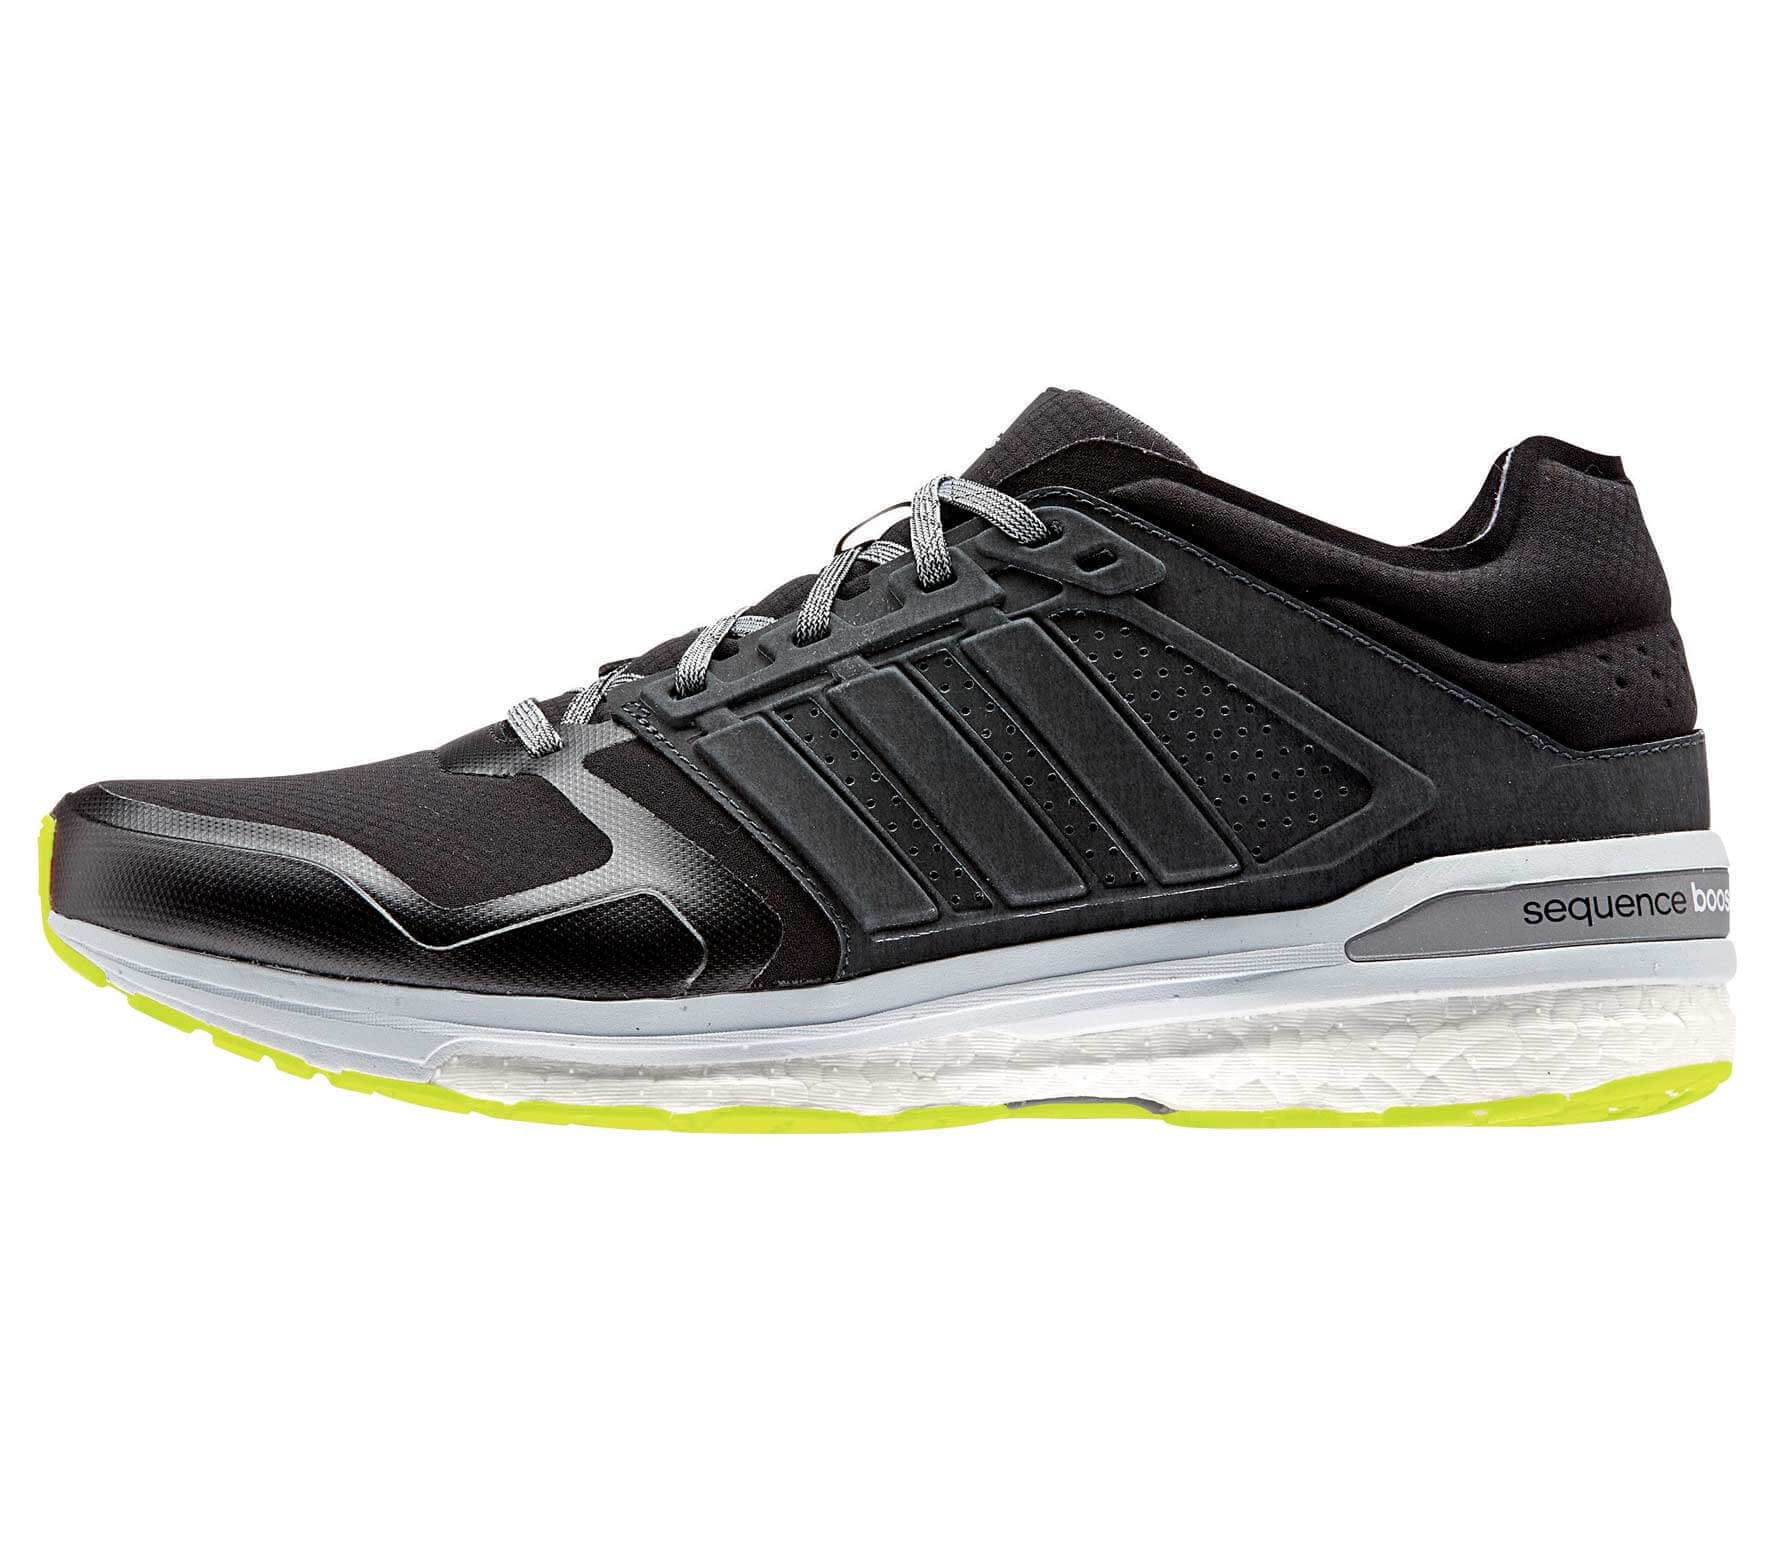 6fb98fe55 Adidas - Supernova Sequence Boost 8 Climaheat men s running shoes (black  yellow)